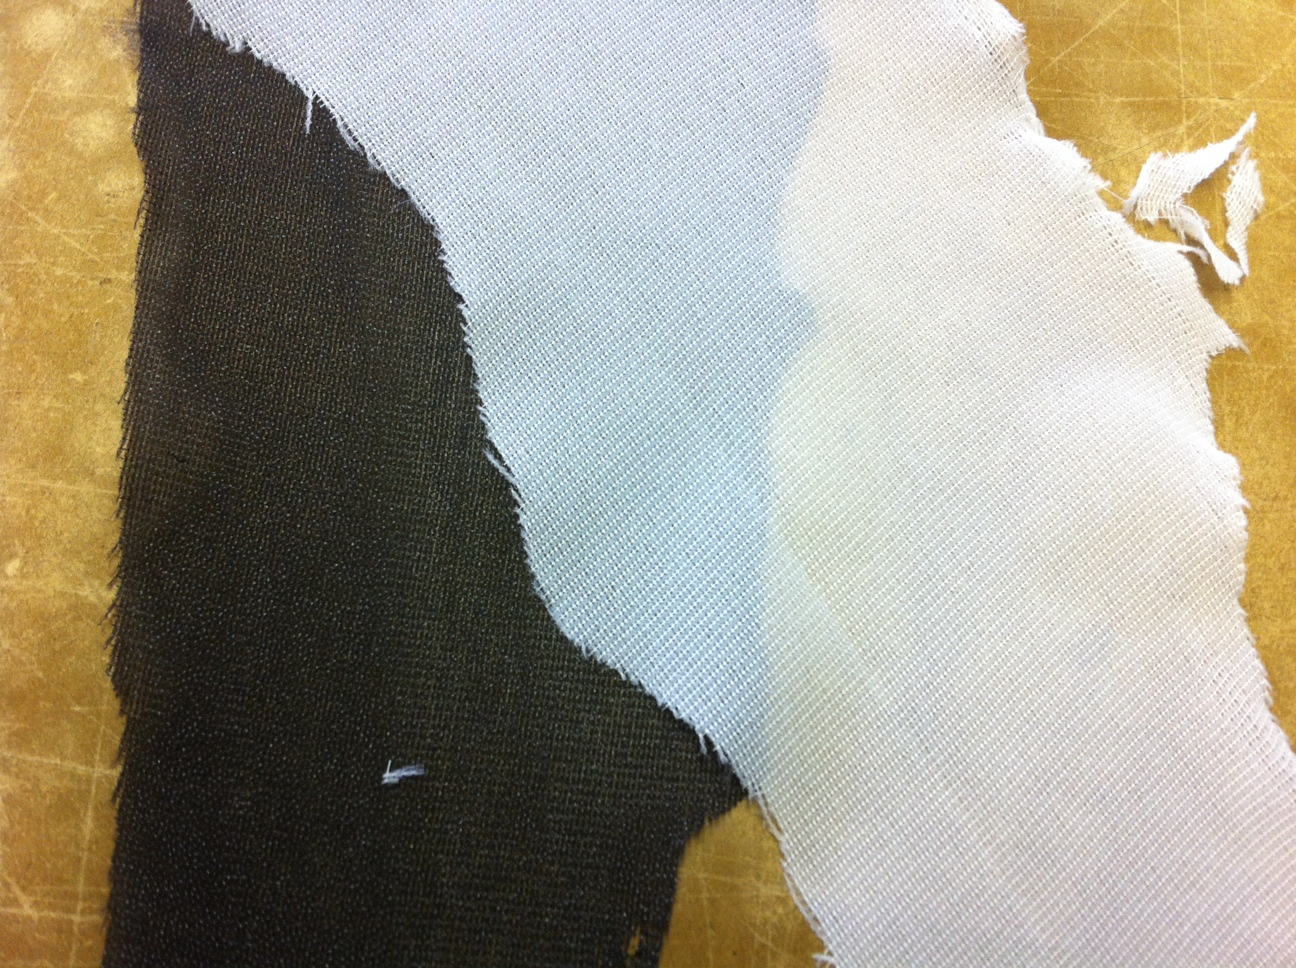 light knit interfacing